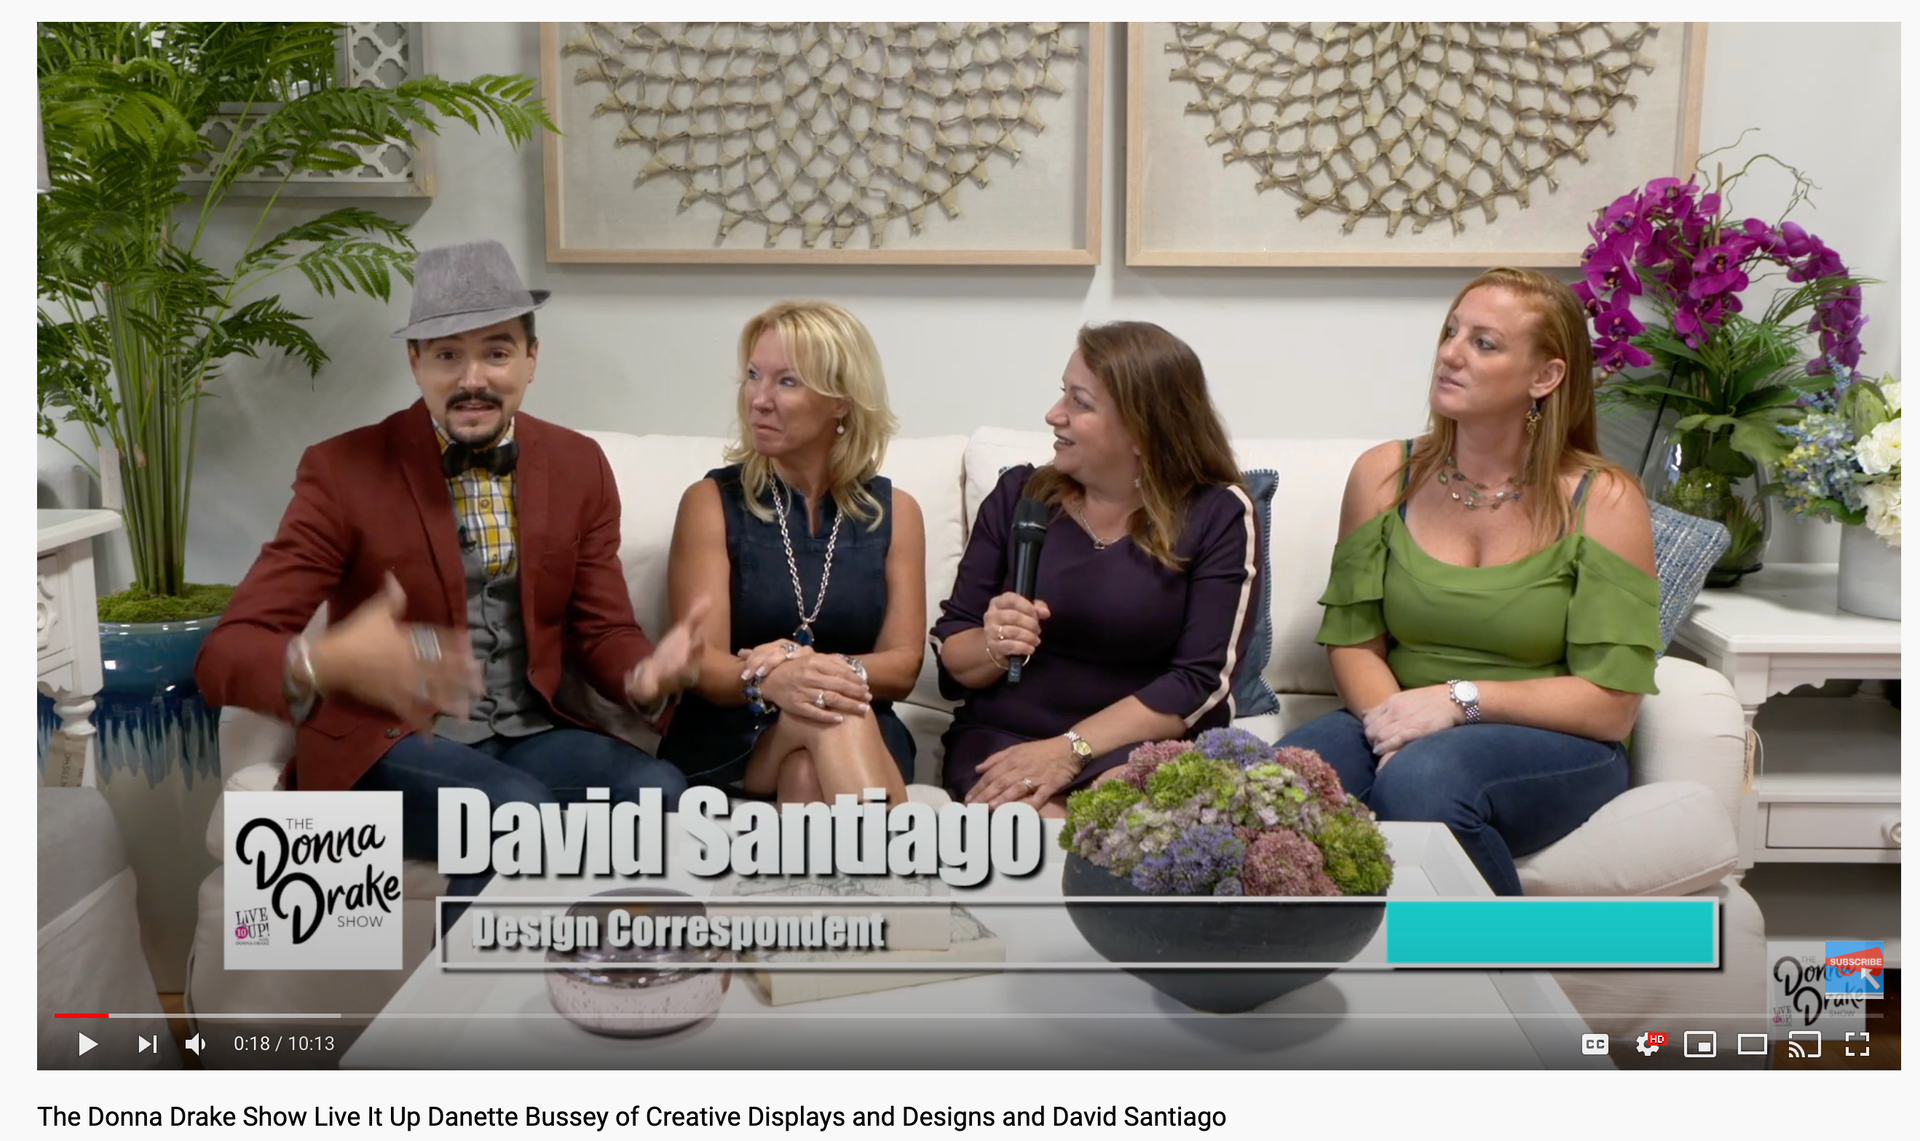 The Donna Drake Show Live It Up Danette Bussey of Creative Displays and Designs and David Santiago